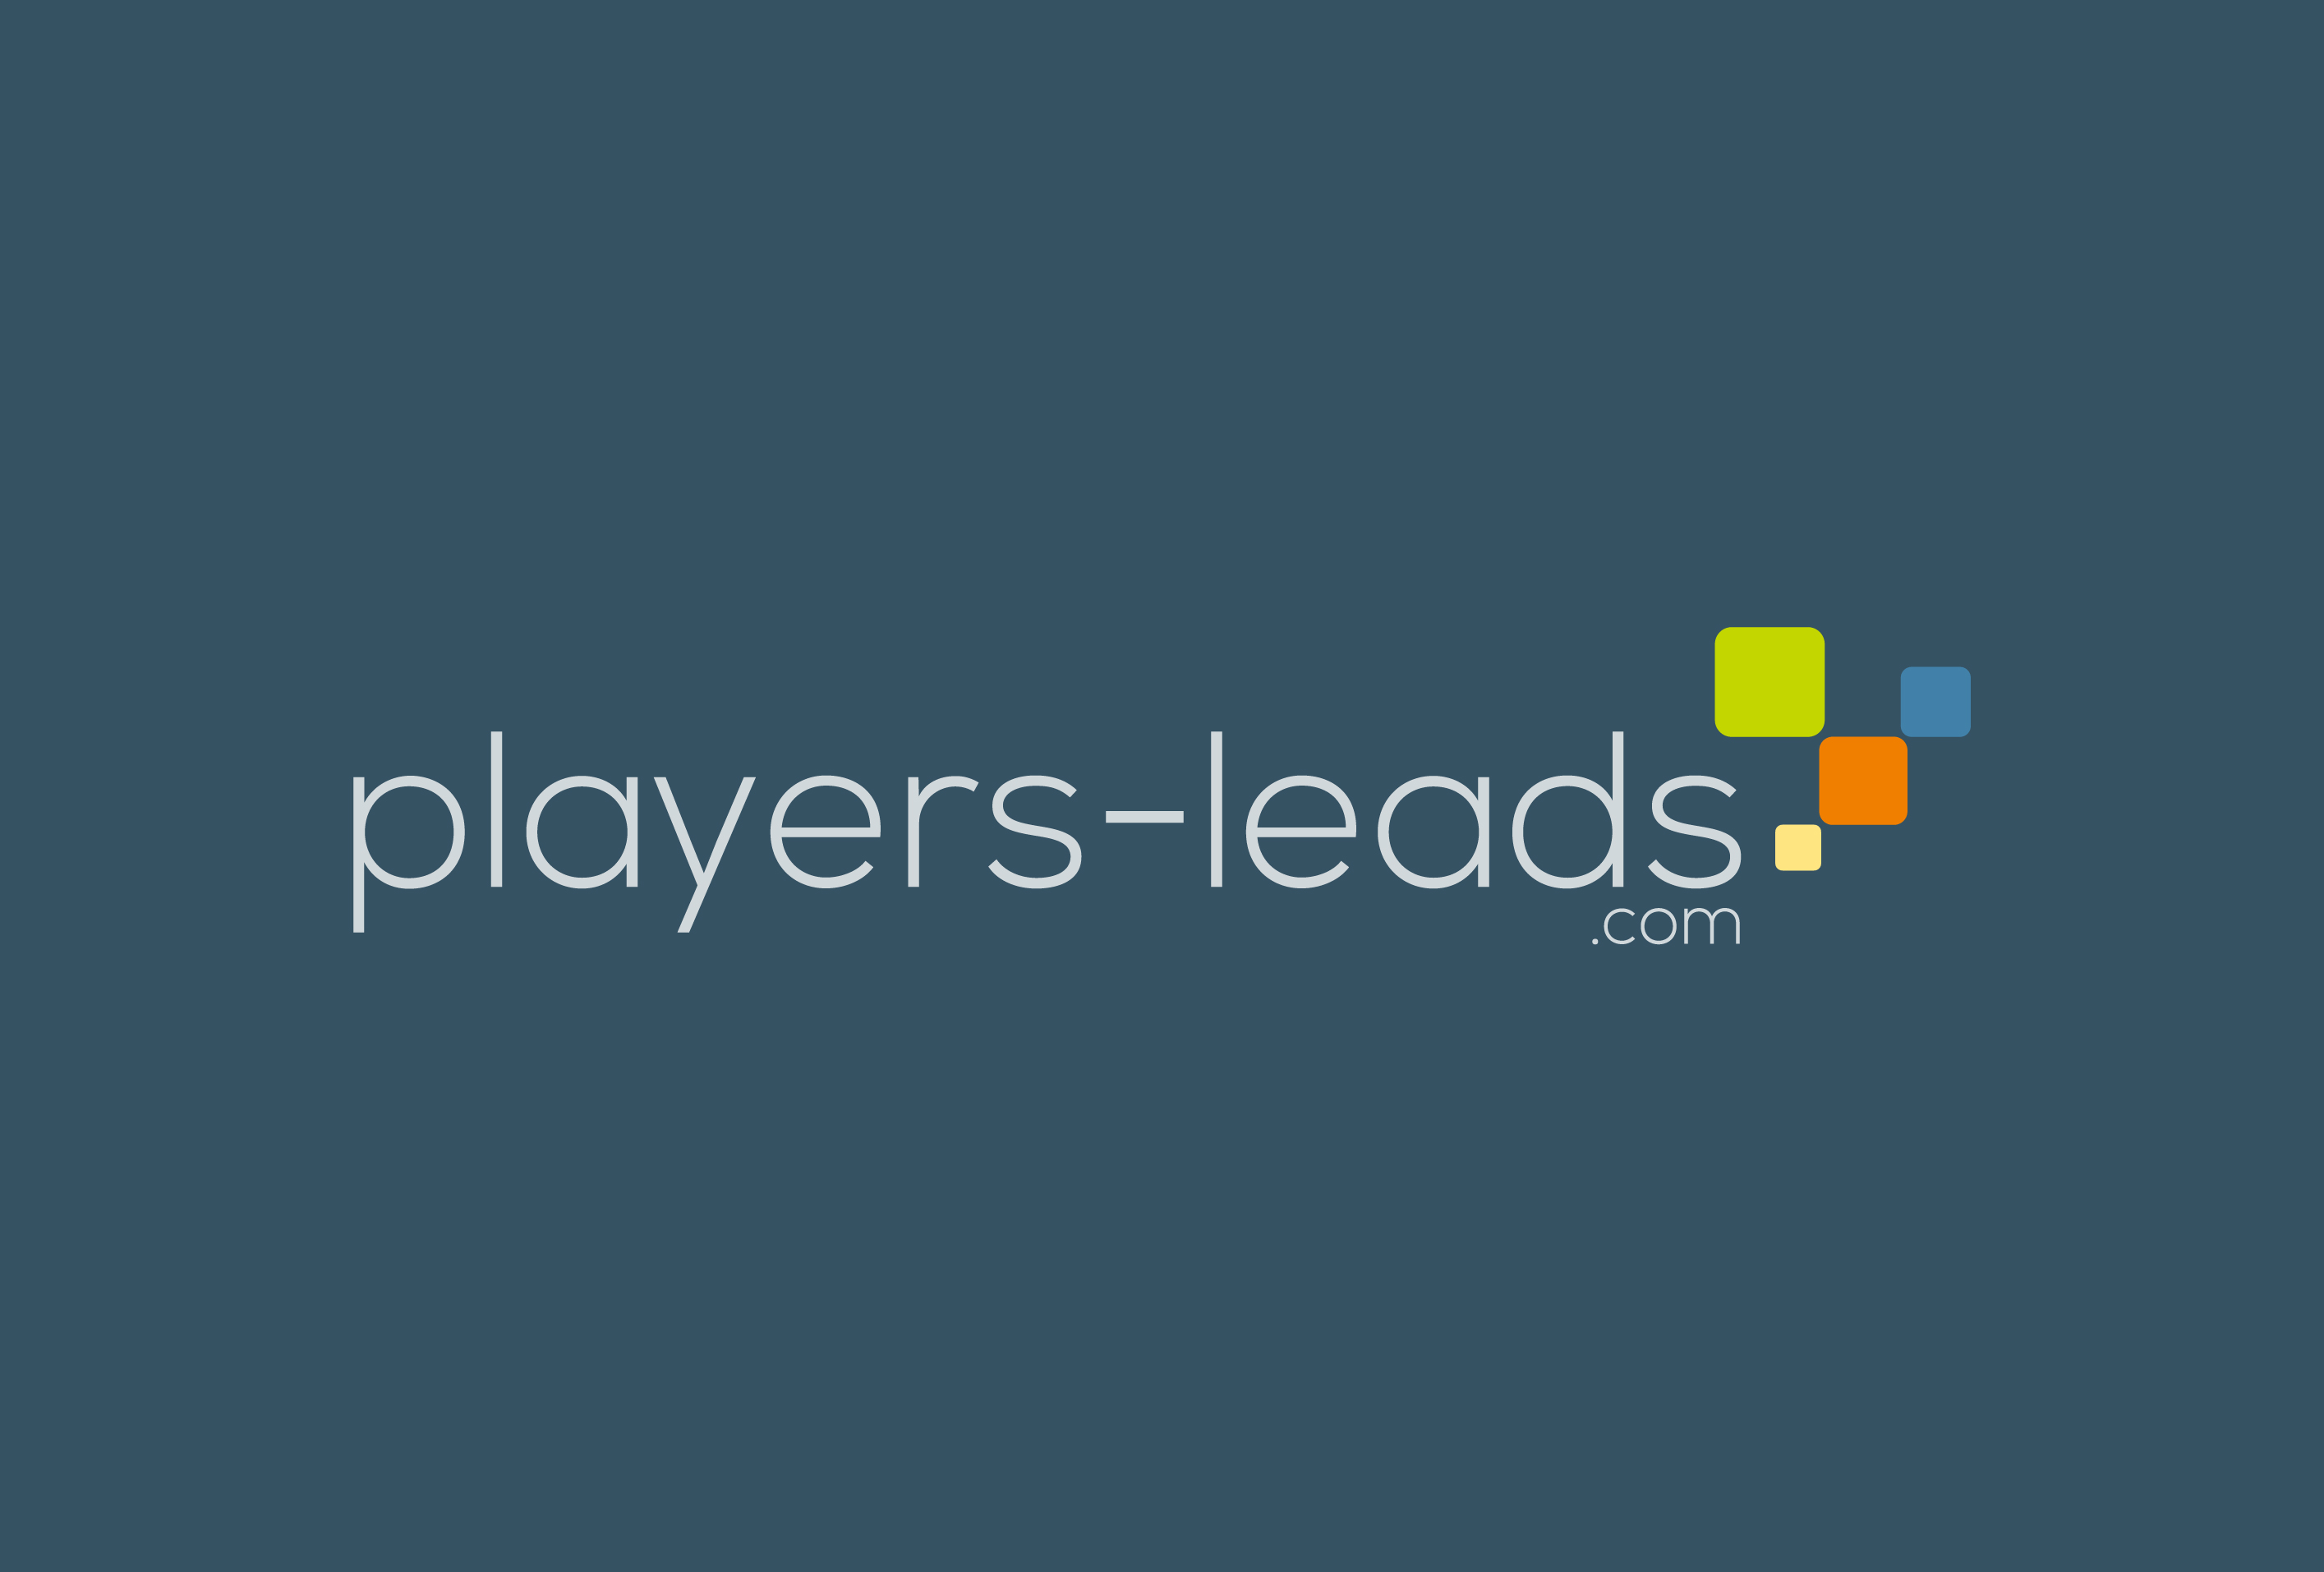 players-leads